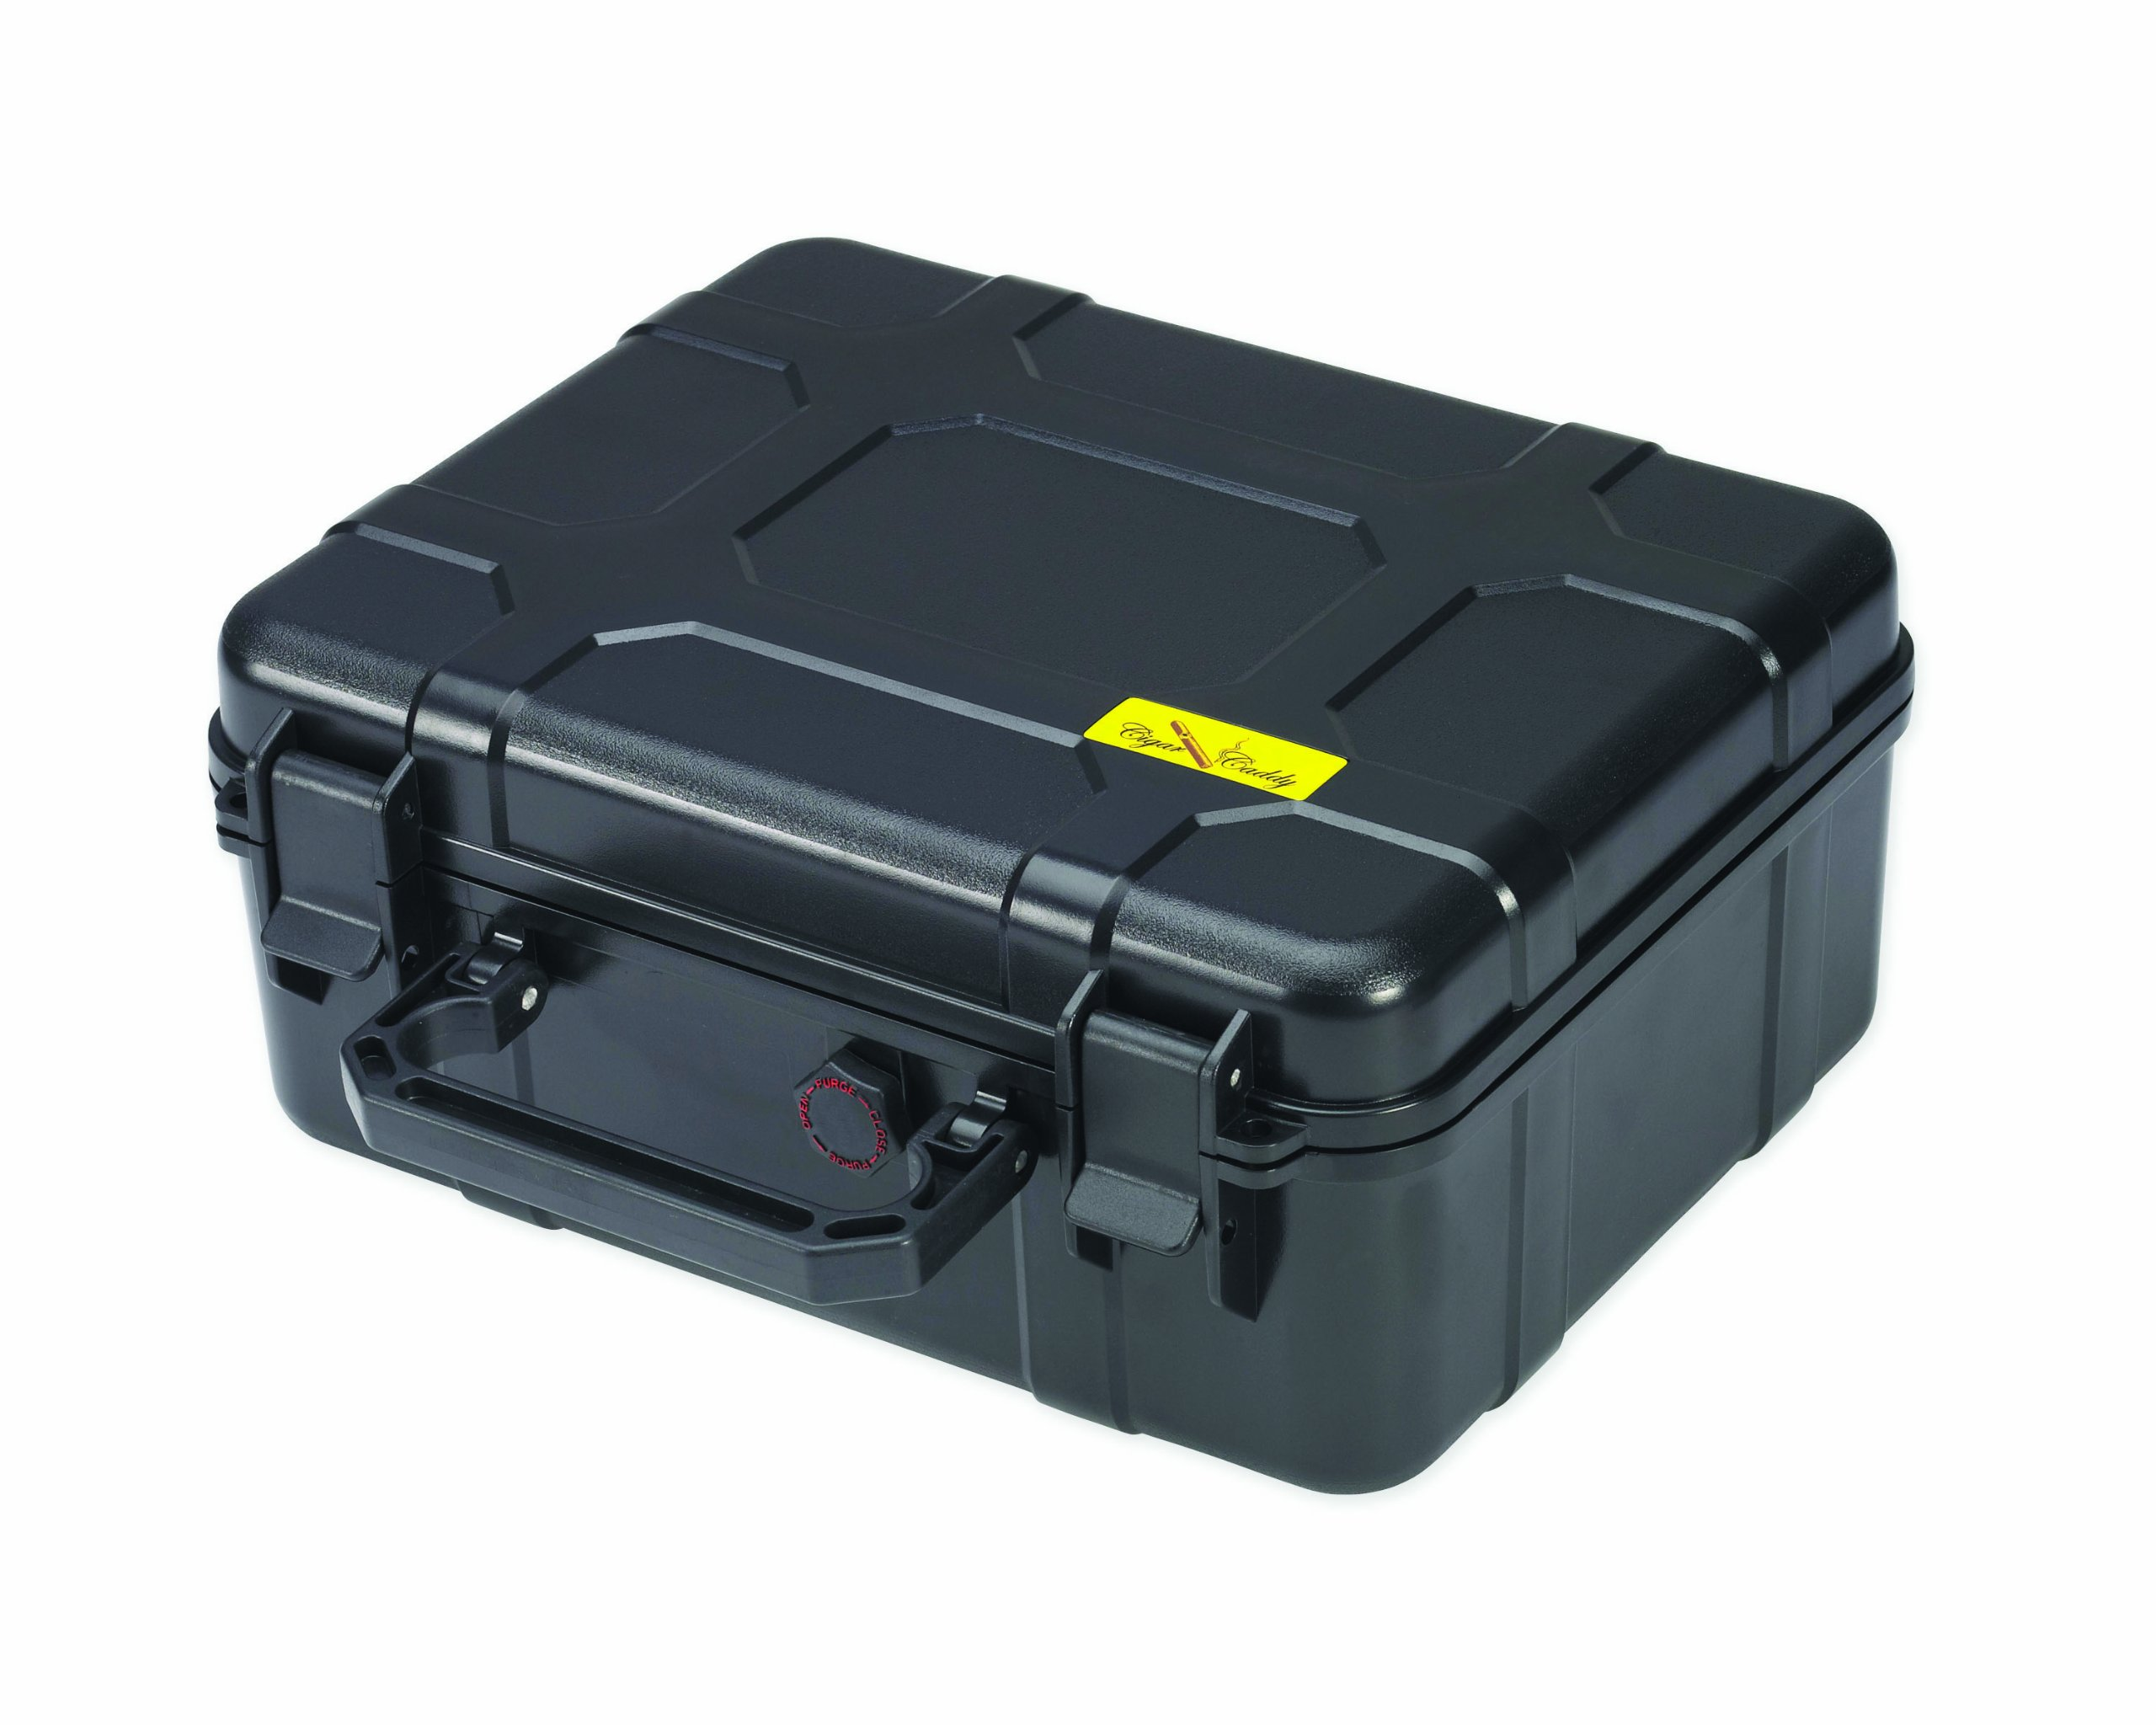 Cigar Caddy 40 40-Cigar Waterproof Travel Humidor, Black Matte